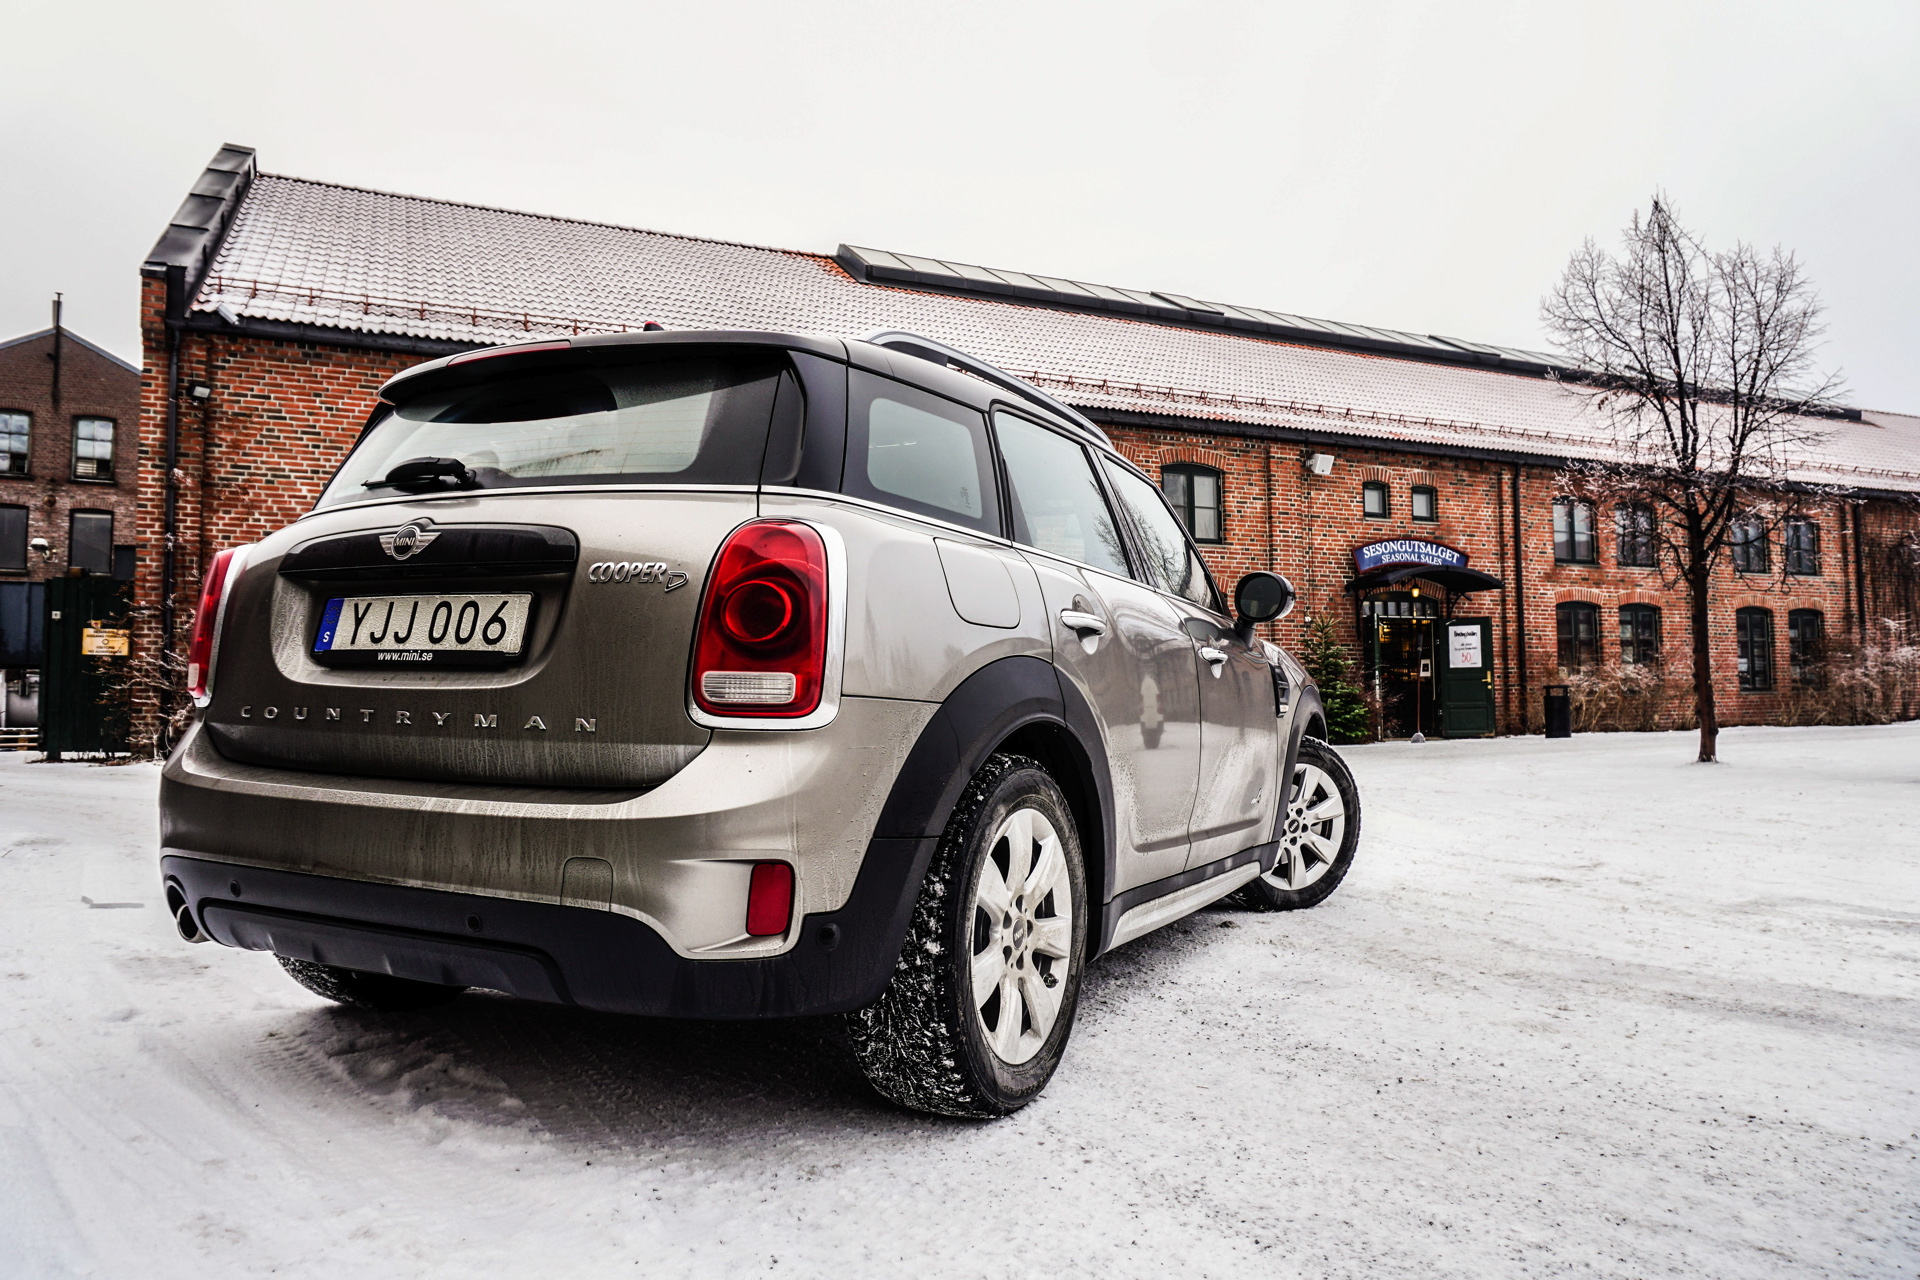 The Countryman Now Looks Like A Hybrid Between Predecessor And Various Fiat Models More Specifically